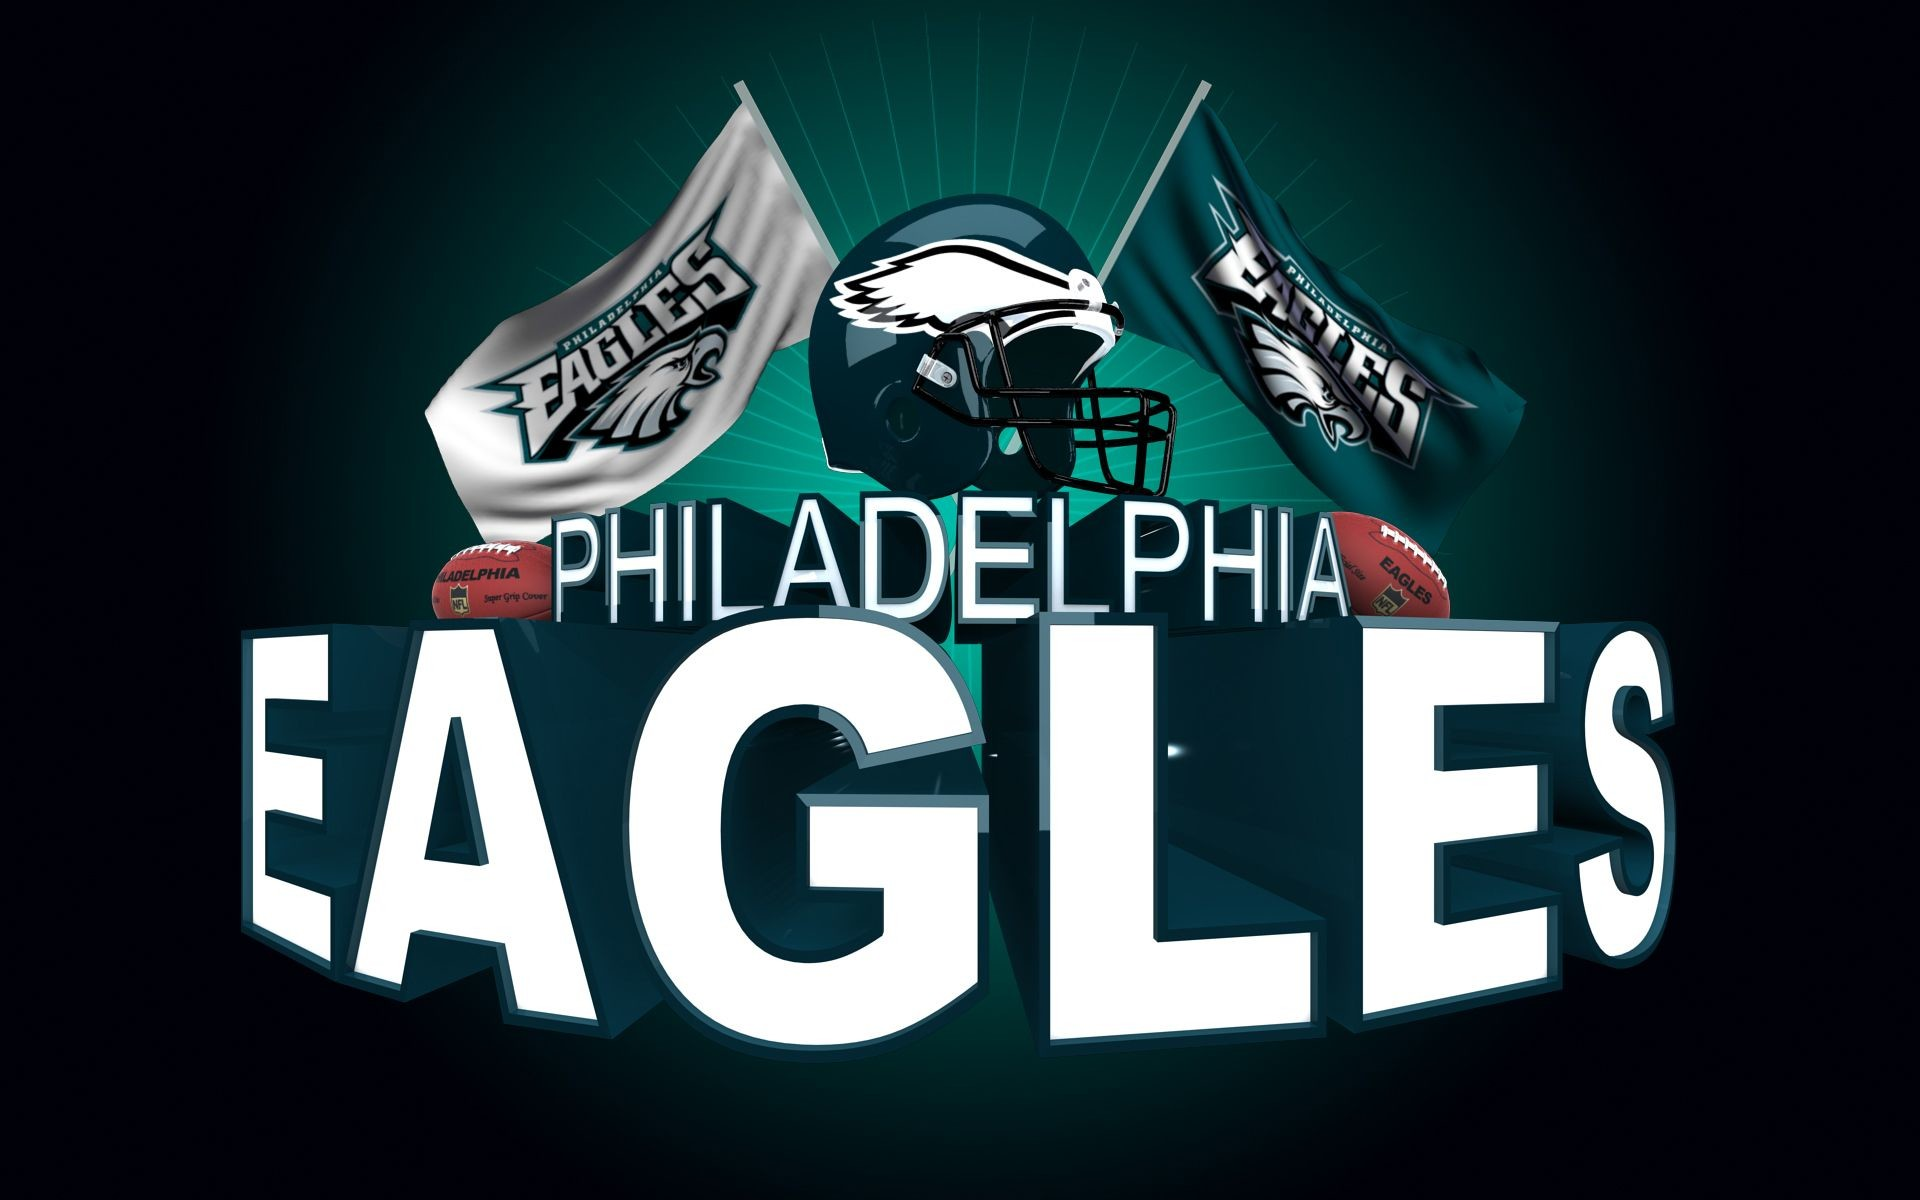 1920x1200 PHILADELPHIA EAGLES nfl football r wallpaper